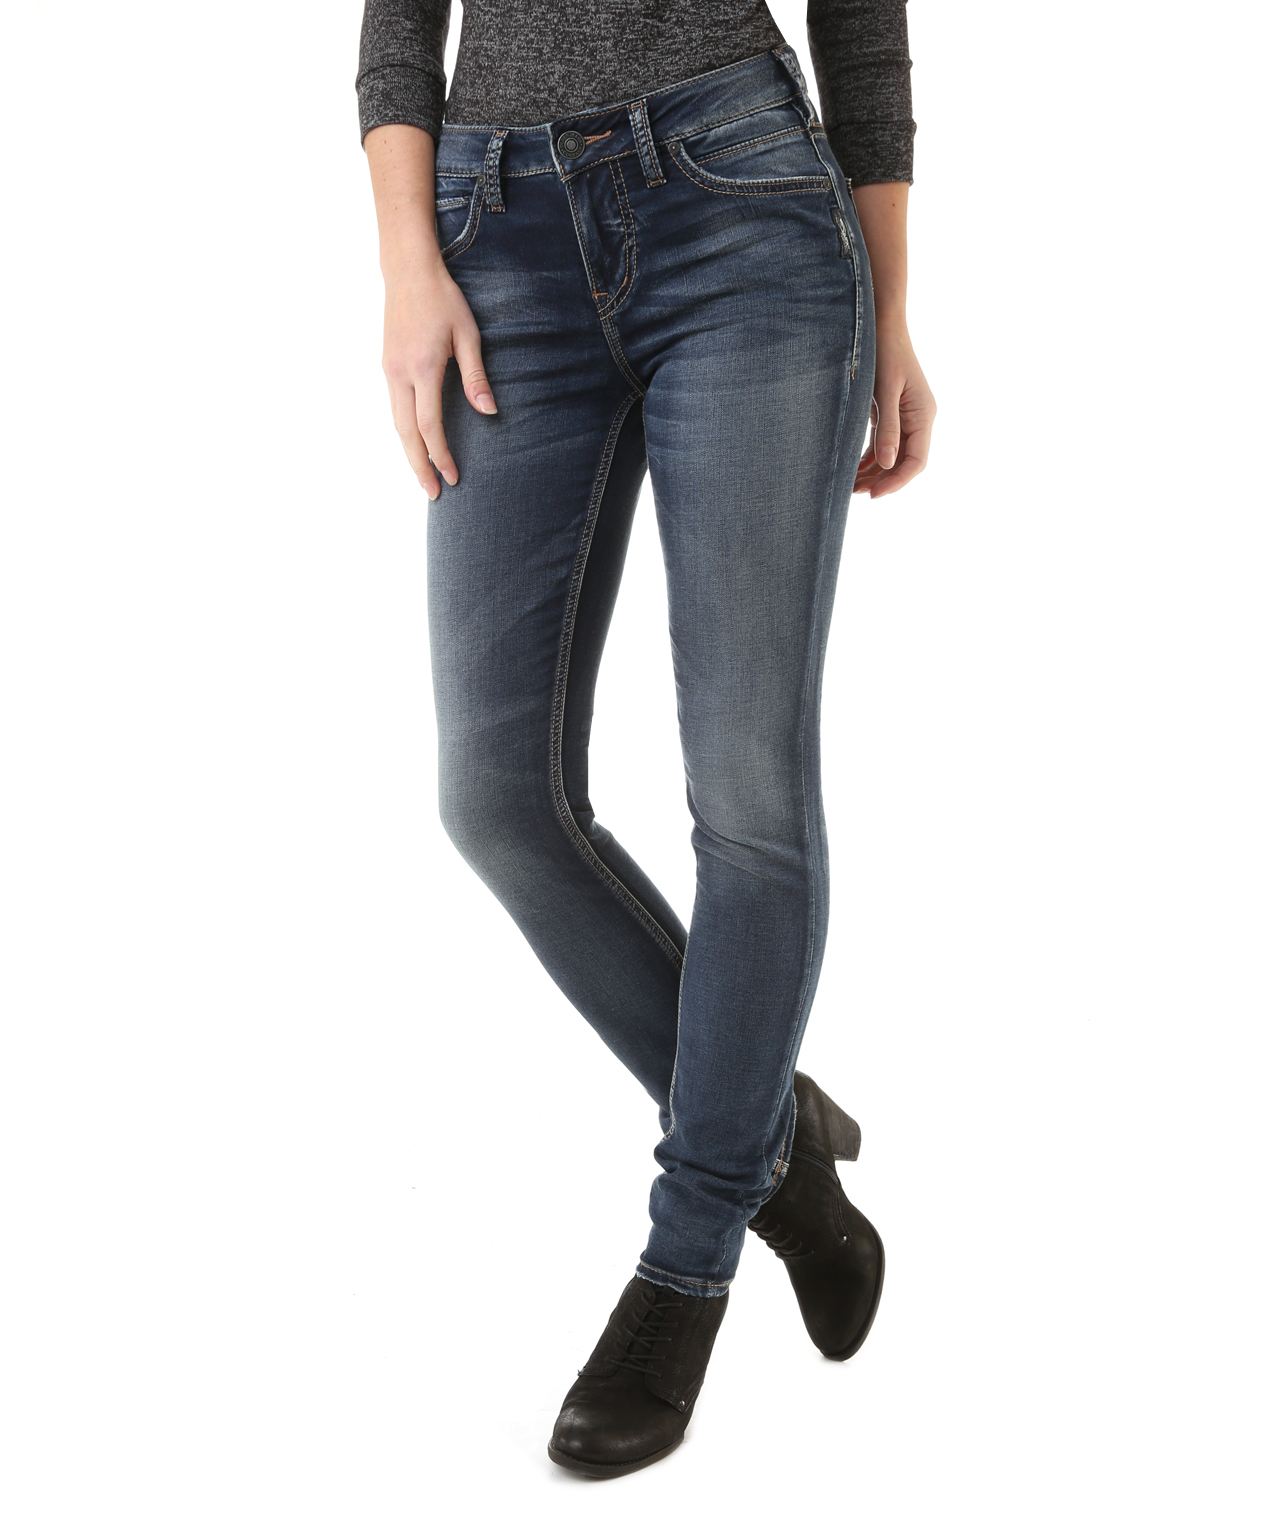 aiko high rise swl387 | silver jeans co